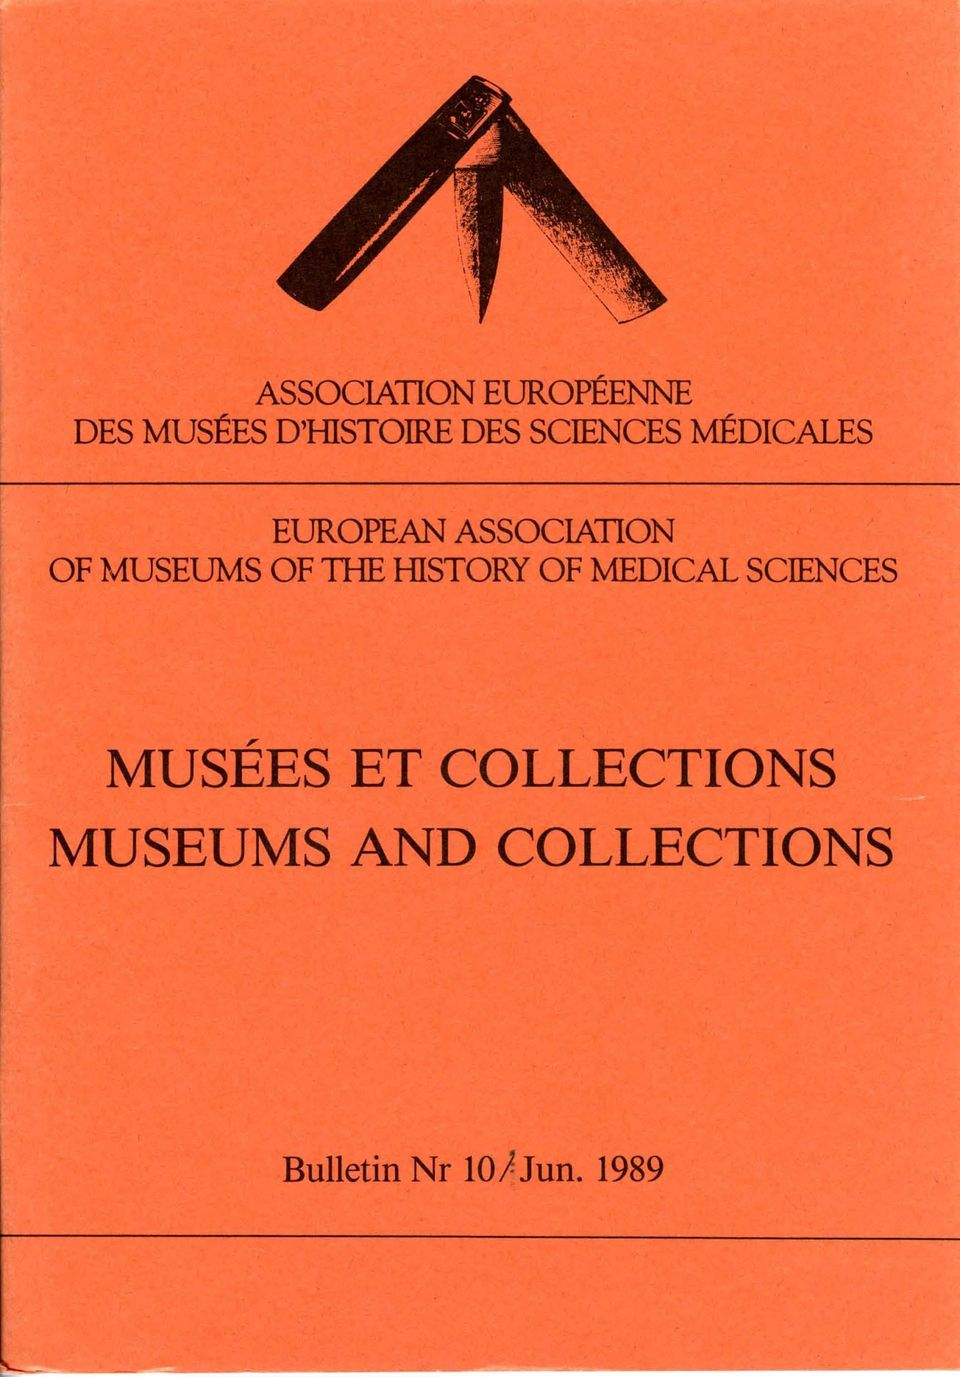 OF 1HE HISTORY OF MEDICAL SCIENCES MUSEES ET